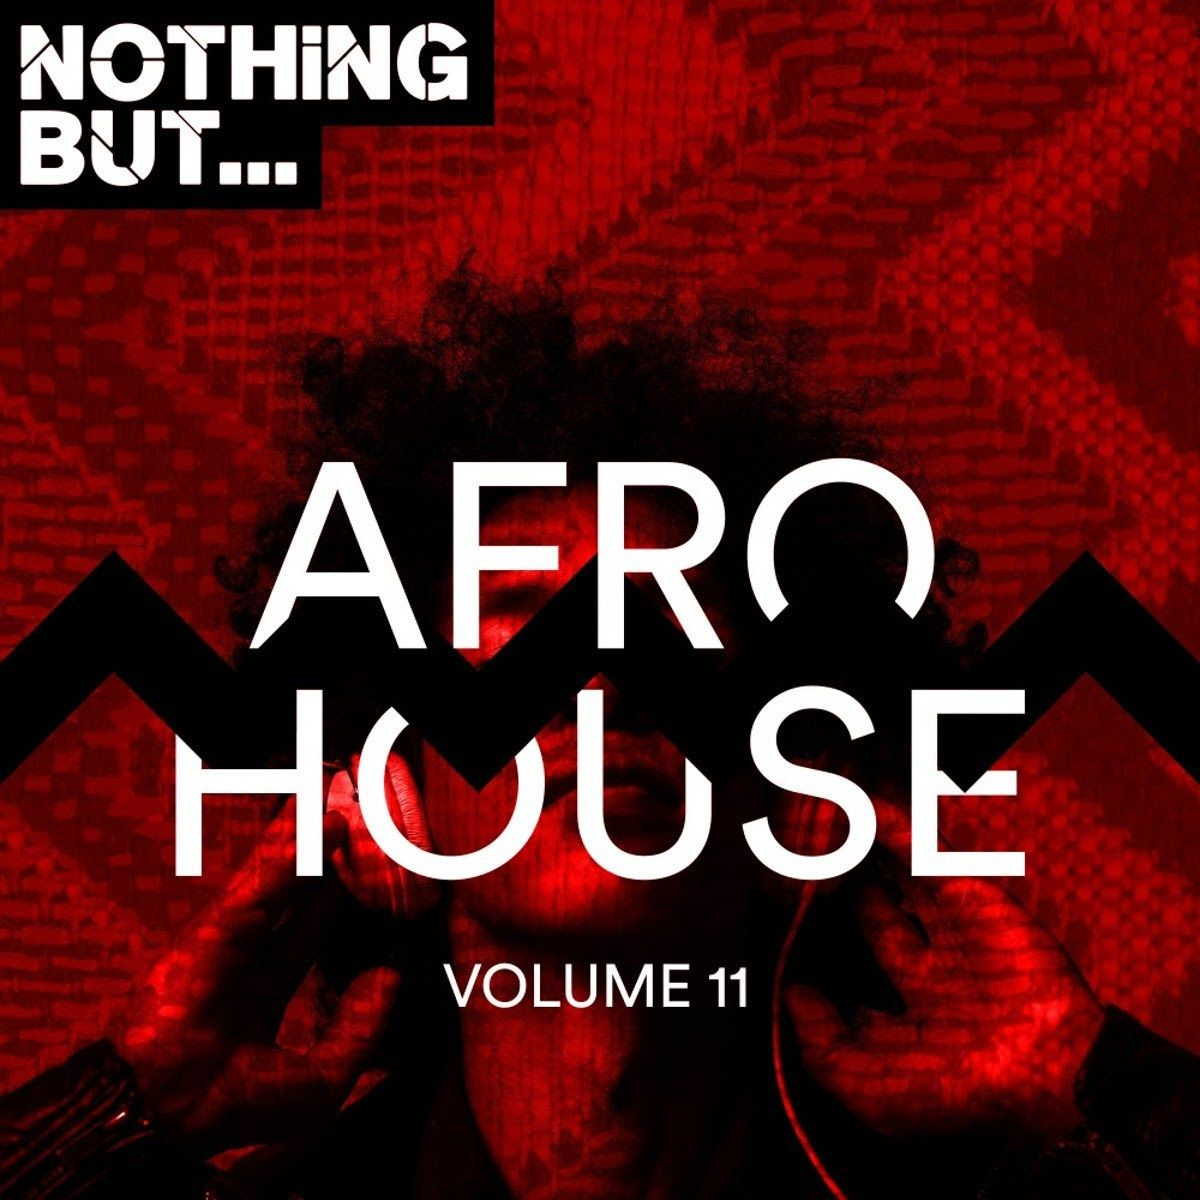 VA Nothing But... Afro House, Vol. 11 in 2020 Afro